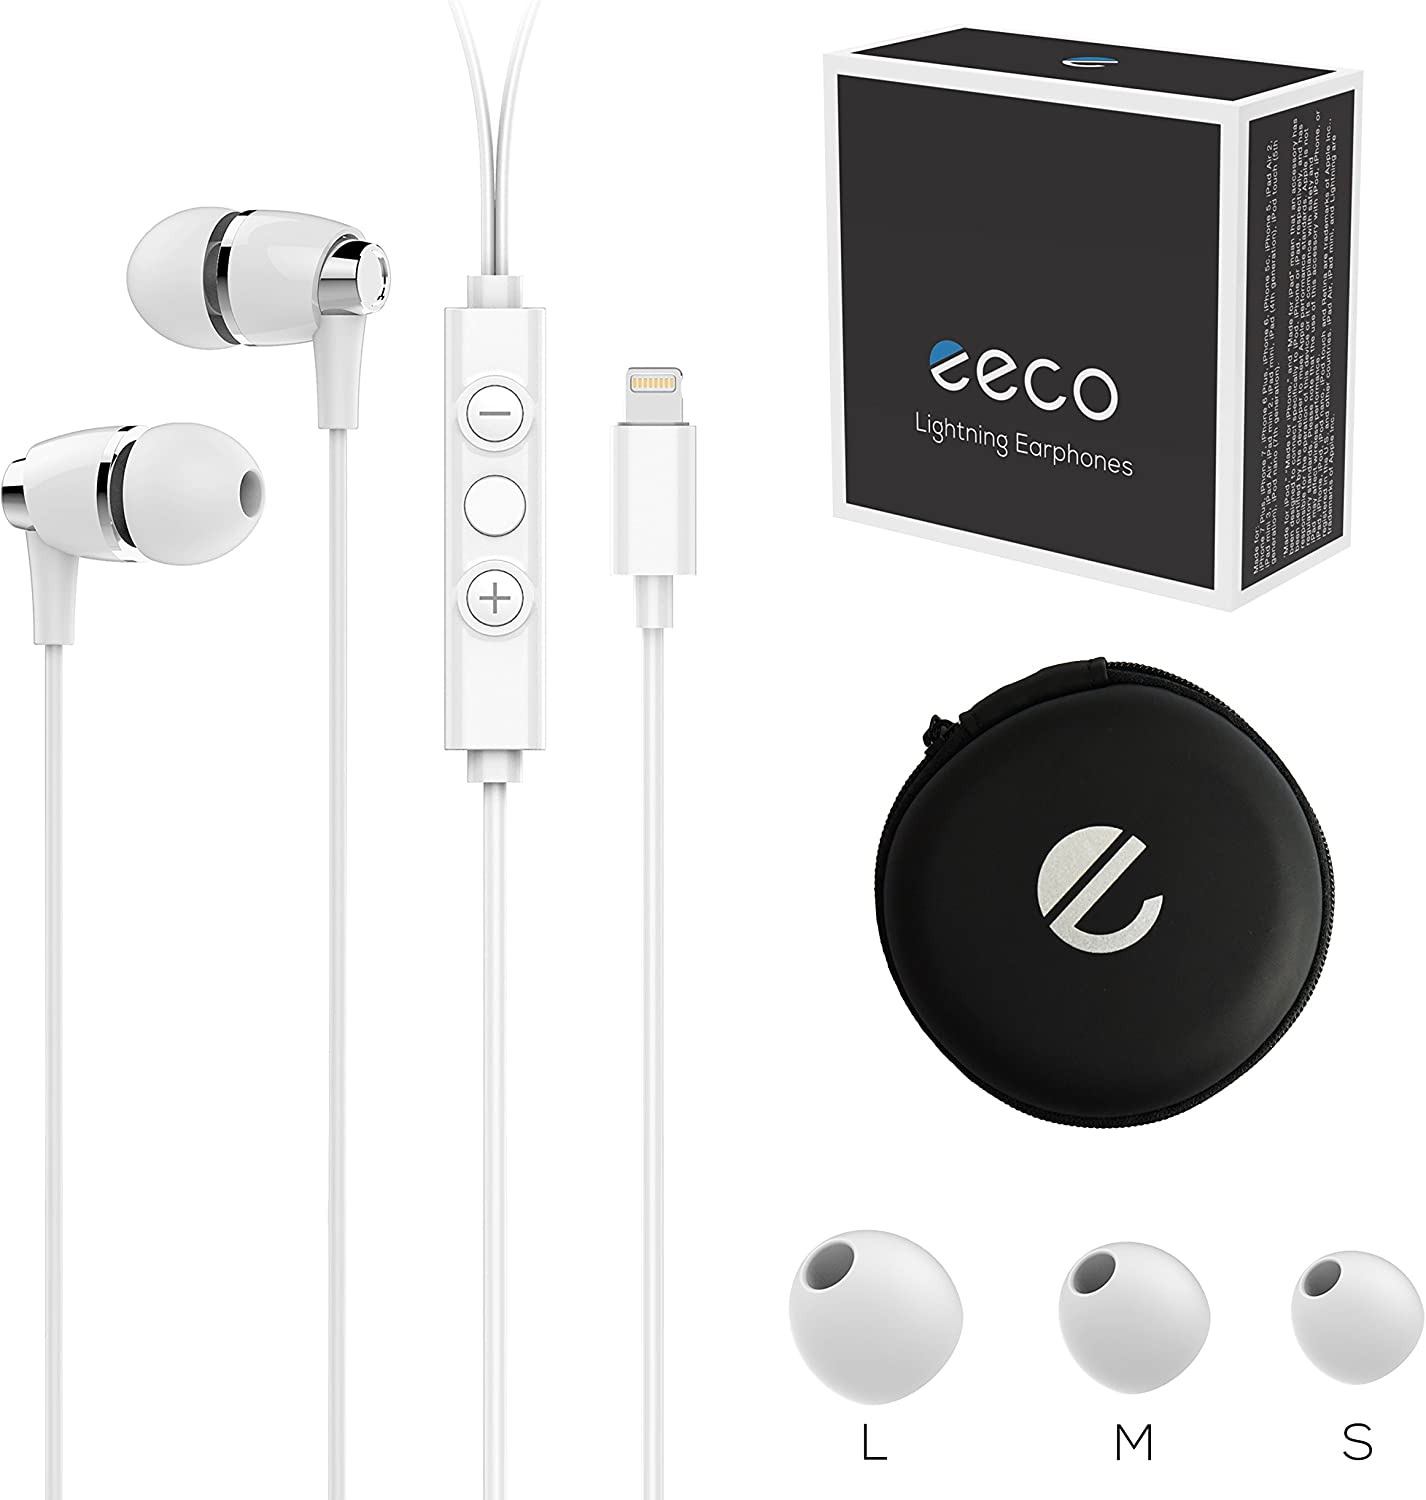 eeco Hi-Fi Earbuds with Metallic ABS Built, in-Ear Noise-Isolating Headphones Wired Earphone with Remote and Mic Compatible with iPhone 11,11 Pro, iPhone X, iPhone 8/7/6s/Plus, iPad Pro and More